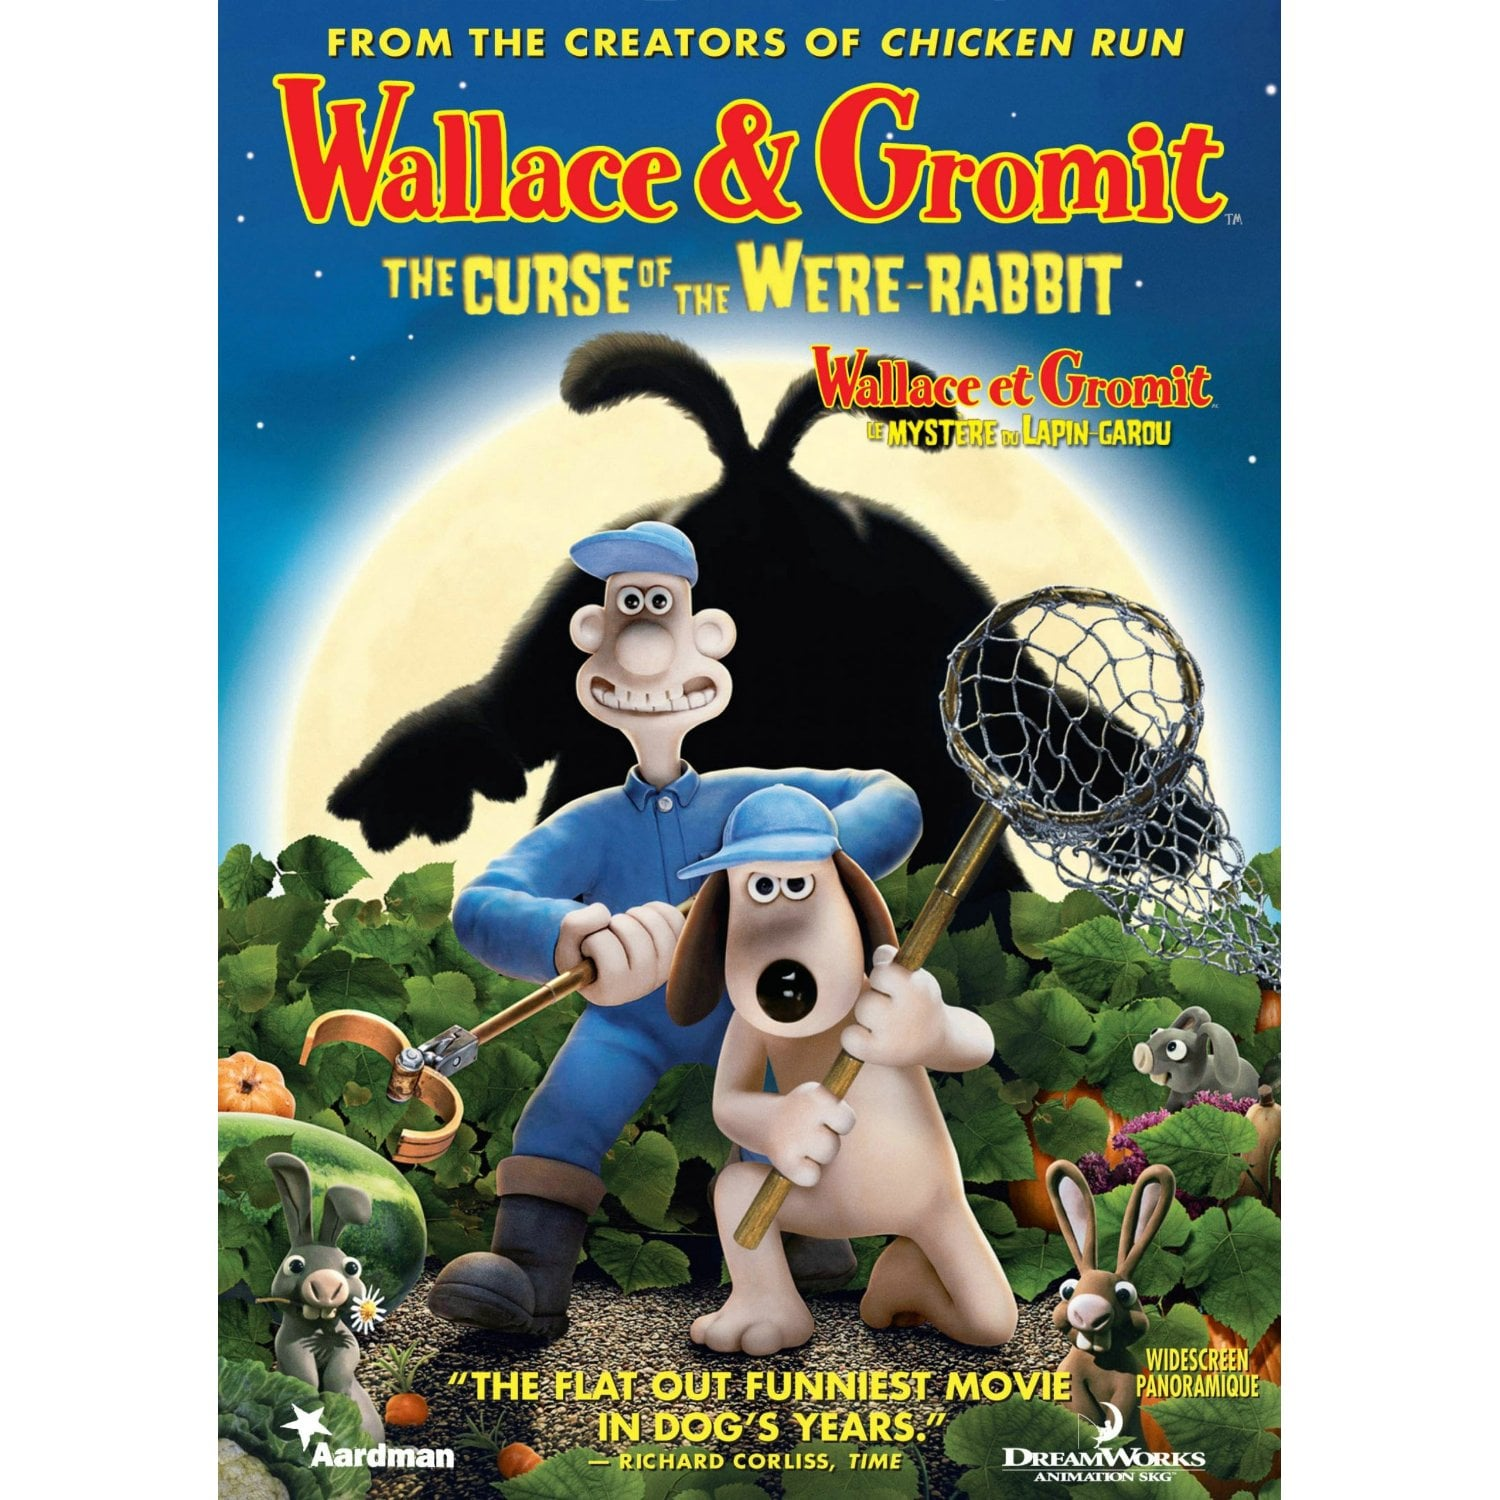 Wallace & Gromit: The Curse of the Were-Rabbit (G)